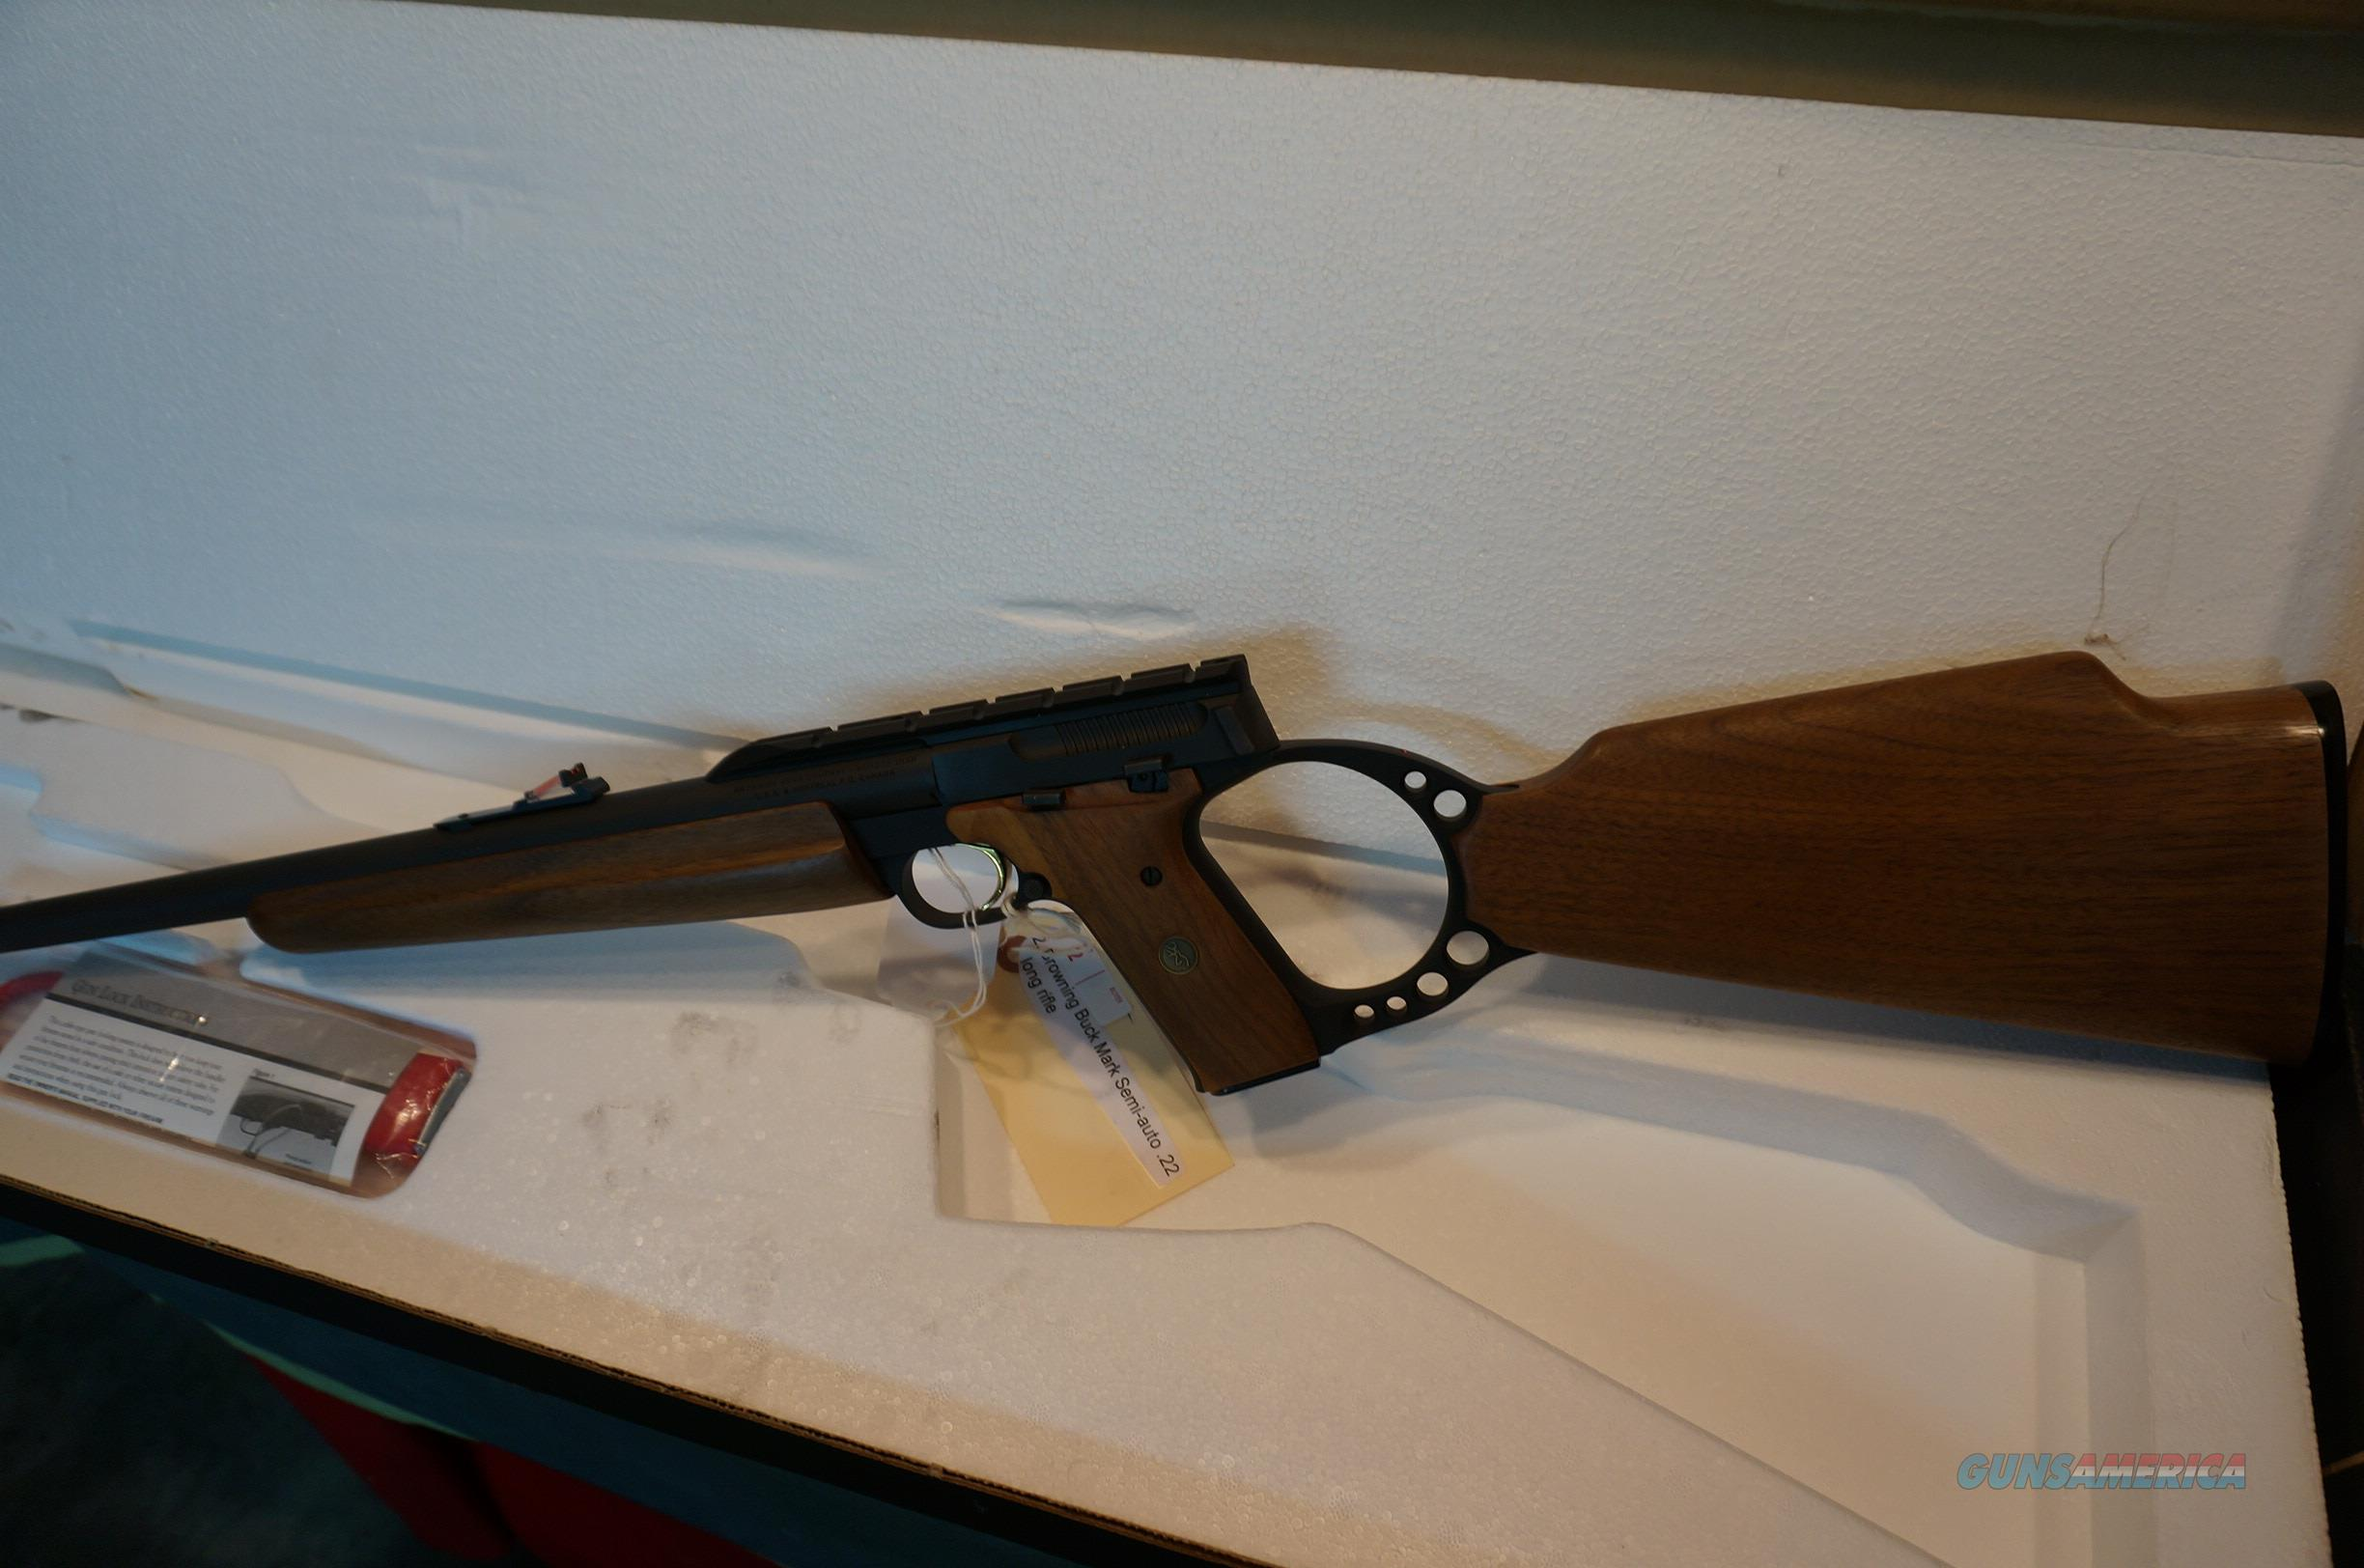 Browning Buckmark Sporter Rifle 22LR ANIB  Guns > Rifles > Browning Rifles > Semi Auto > Hunting